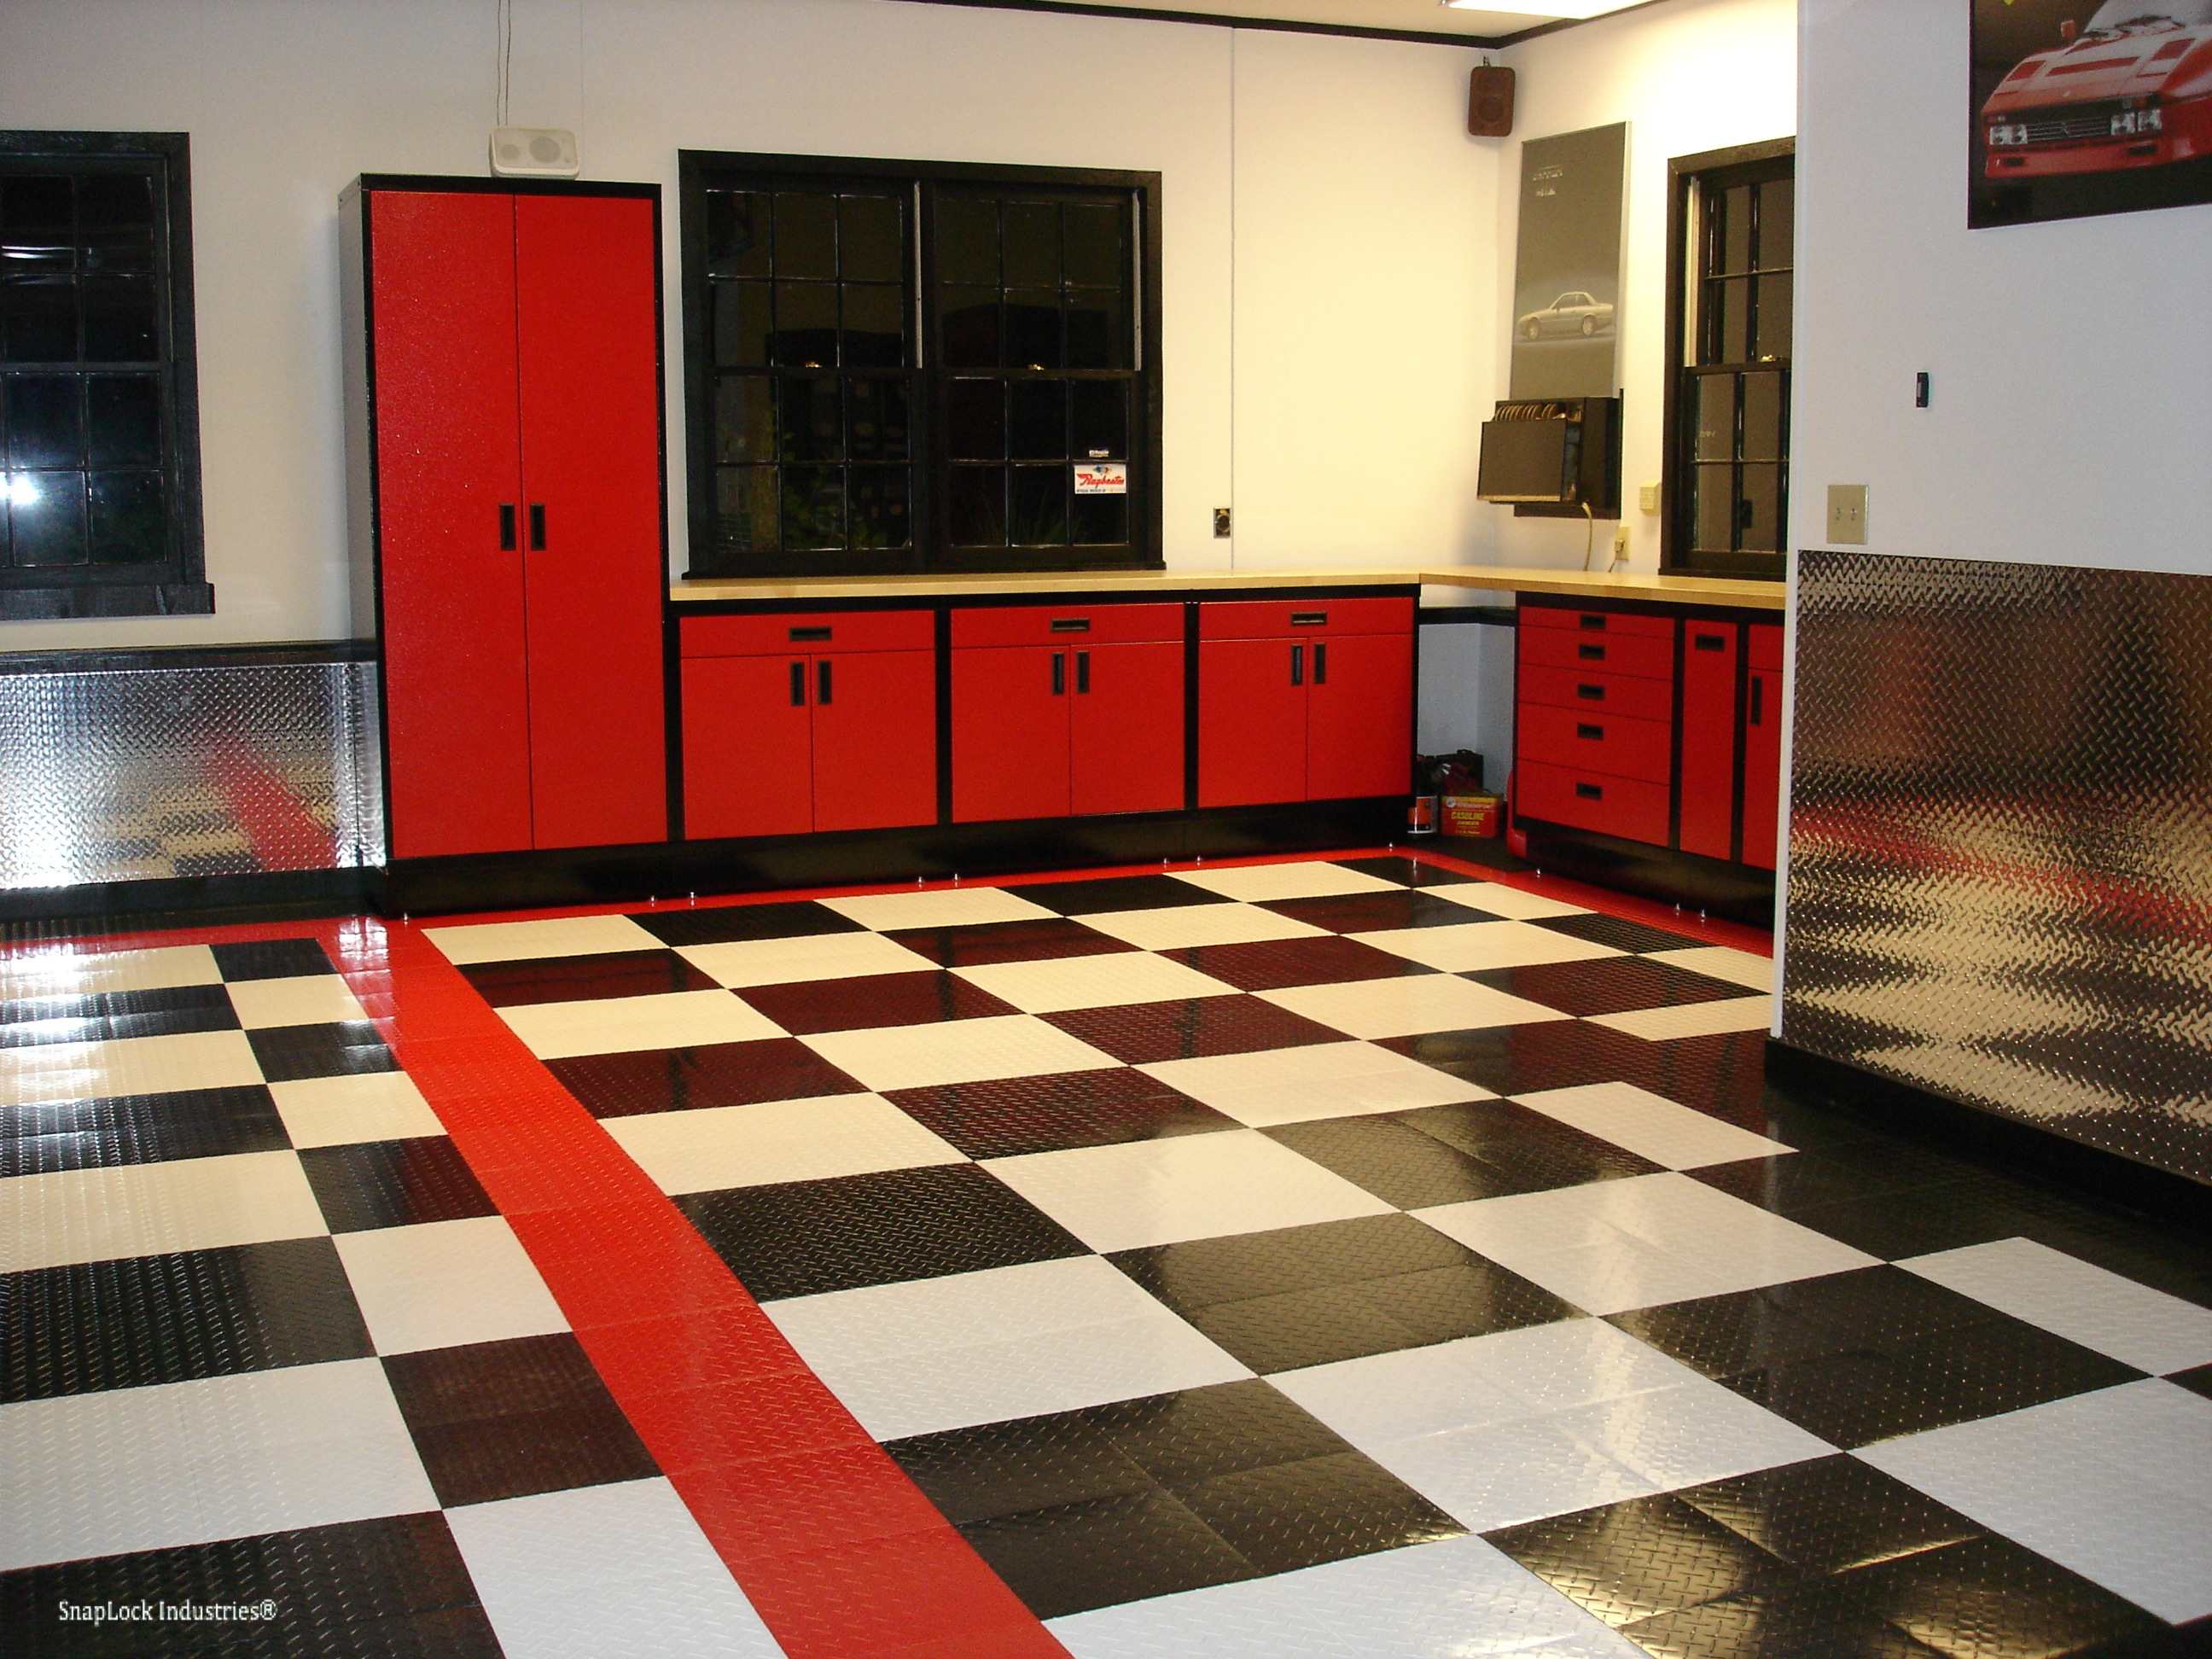 TuffShield RaceDeck Interlocking Garage Tile Mat - FloorMatShop.com - Commercial Floor Matting ...